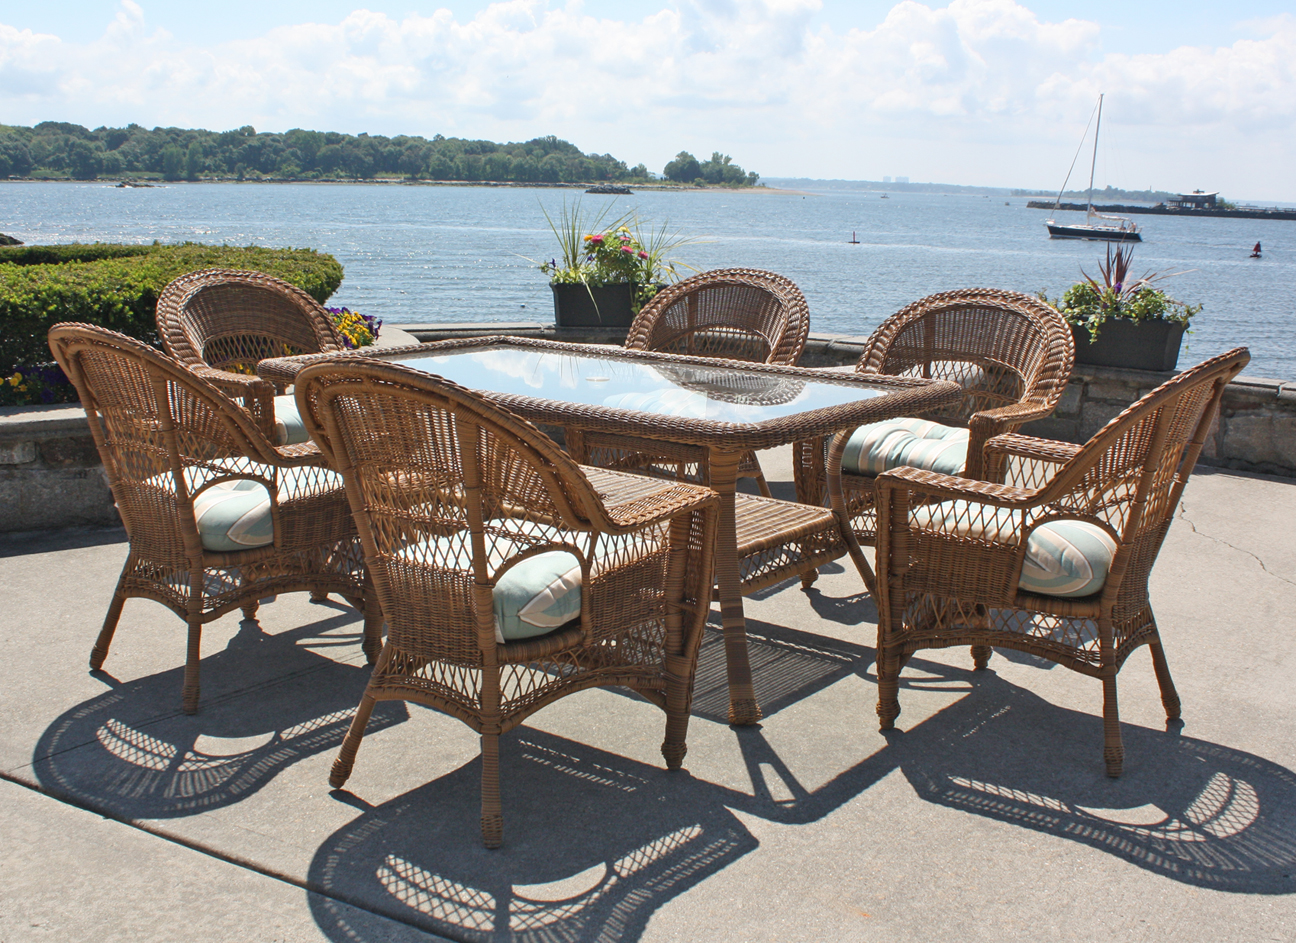 Outdoor wicker dining chairs - Outdoor Wicker Dining Chairs 1